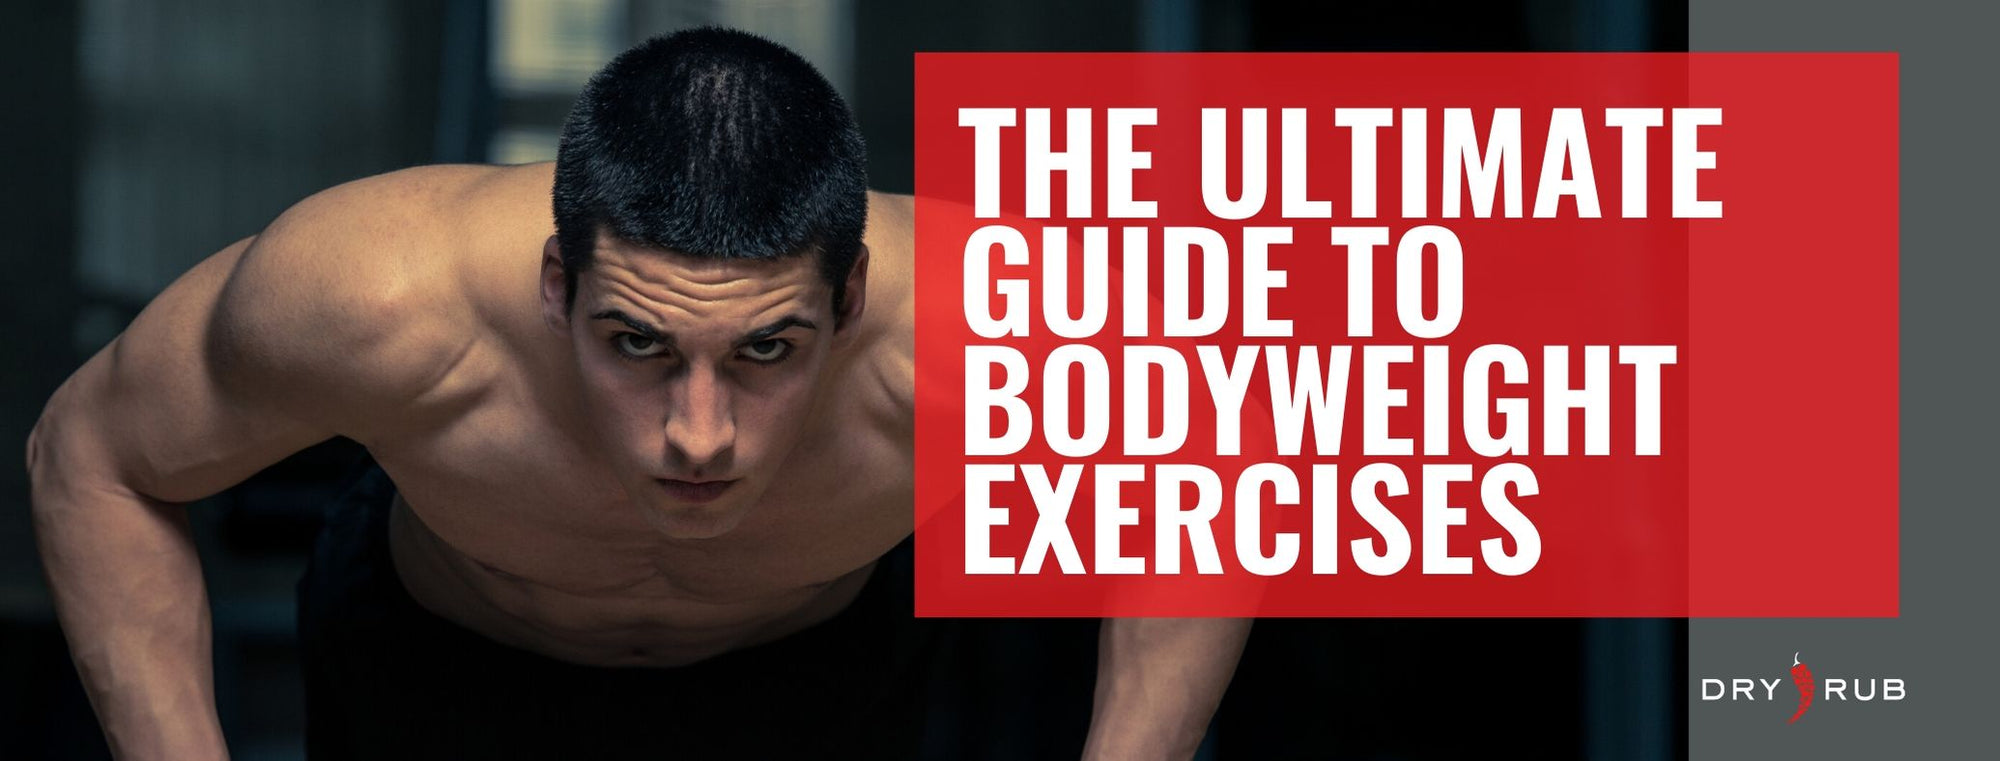 Your Ultimate Guide to Bodyweight Exercises